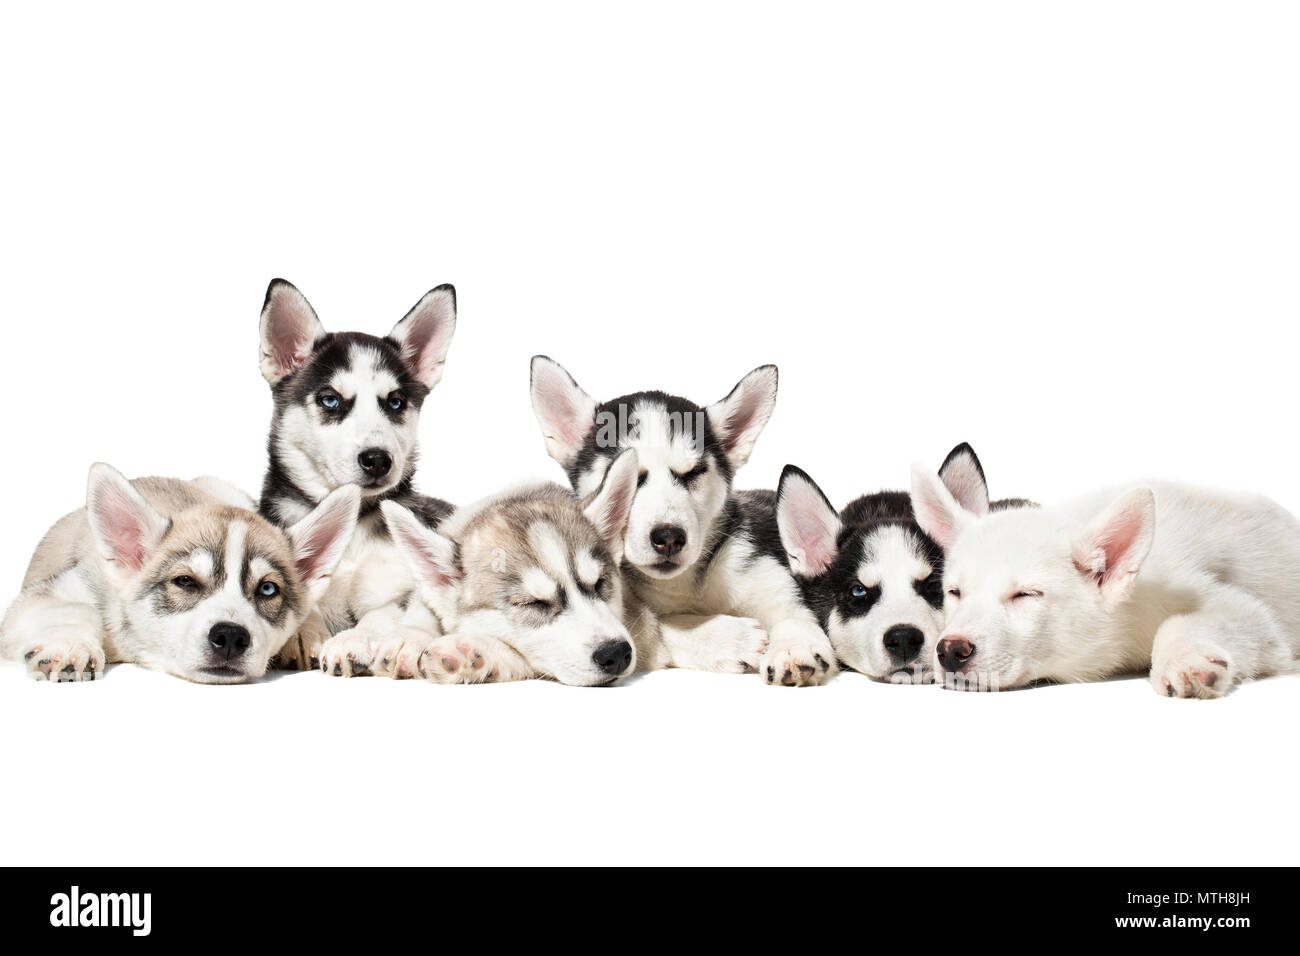 Cute Siberian husky puppies on white background. - Stock Image